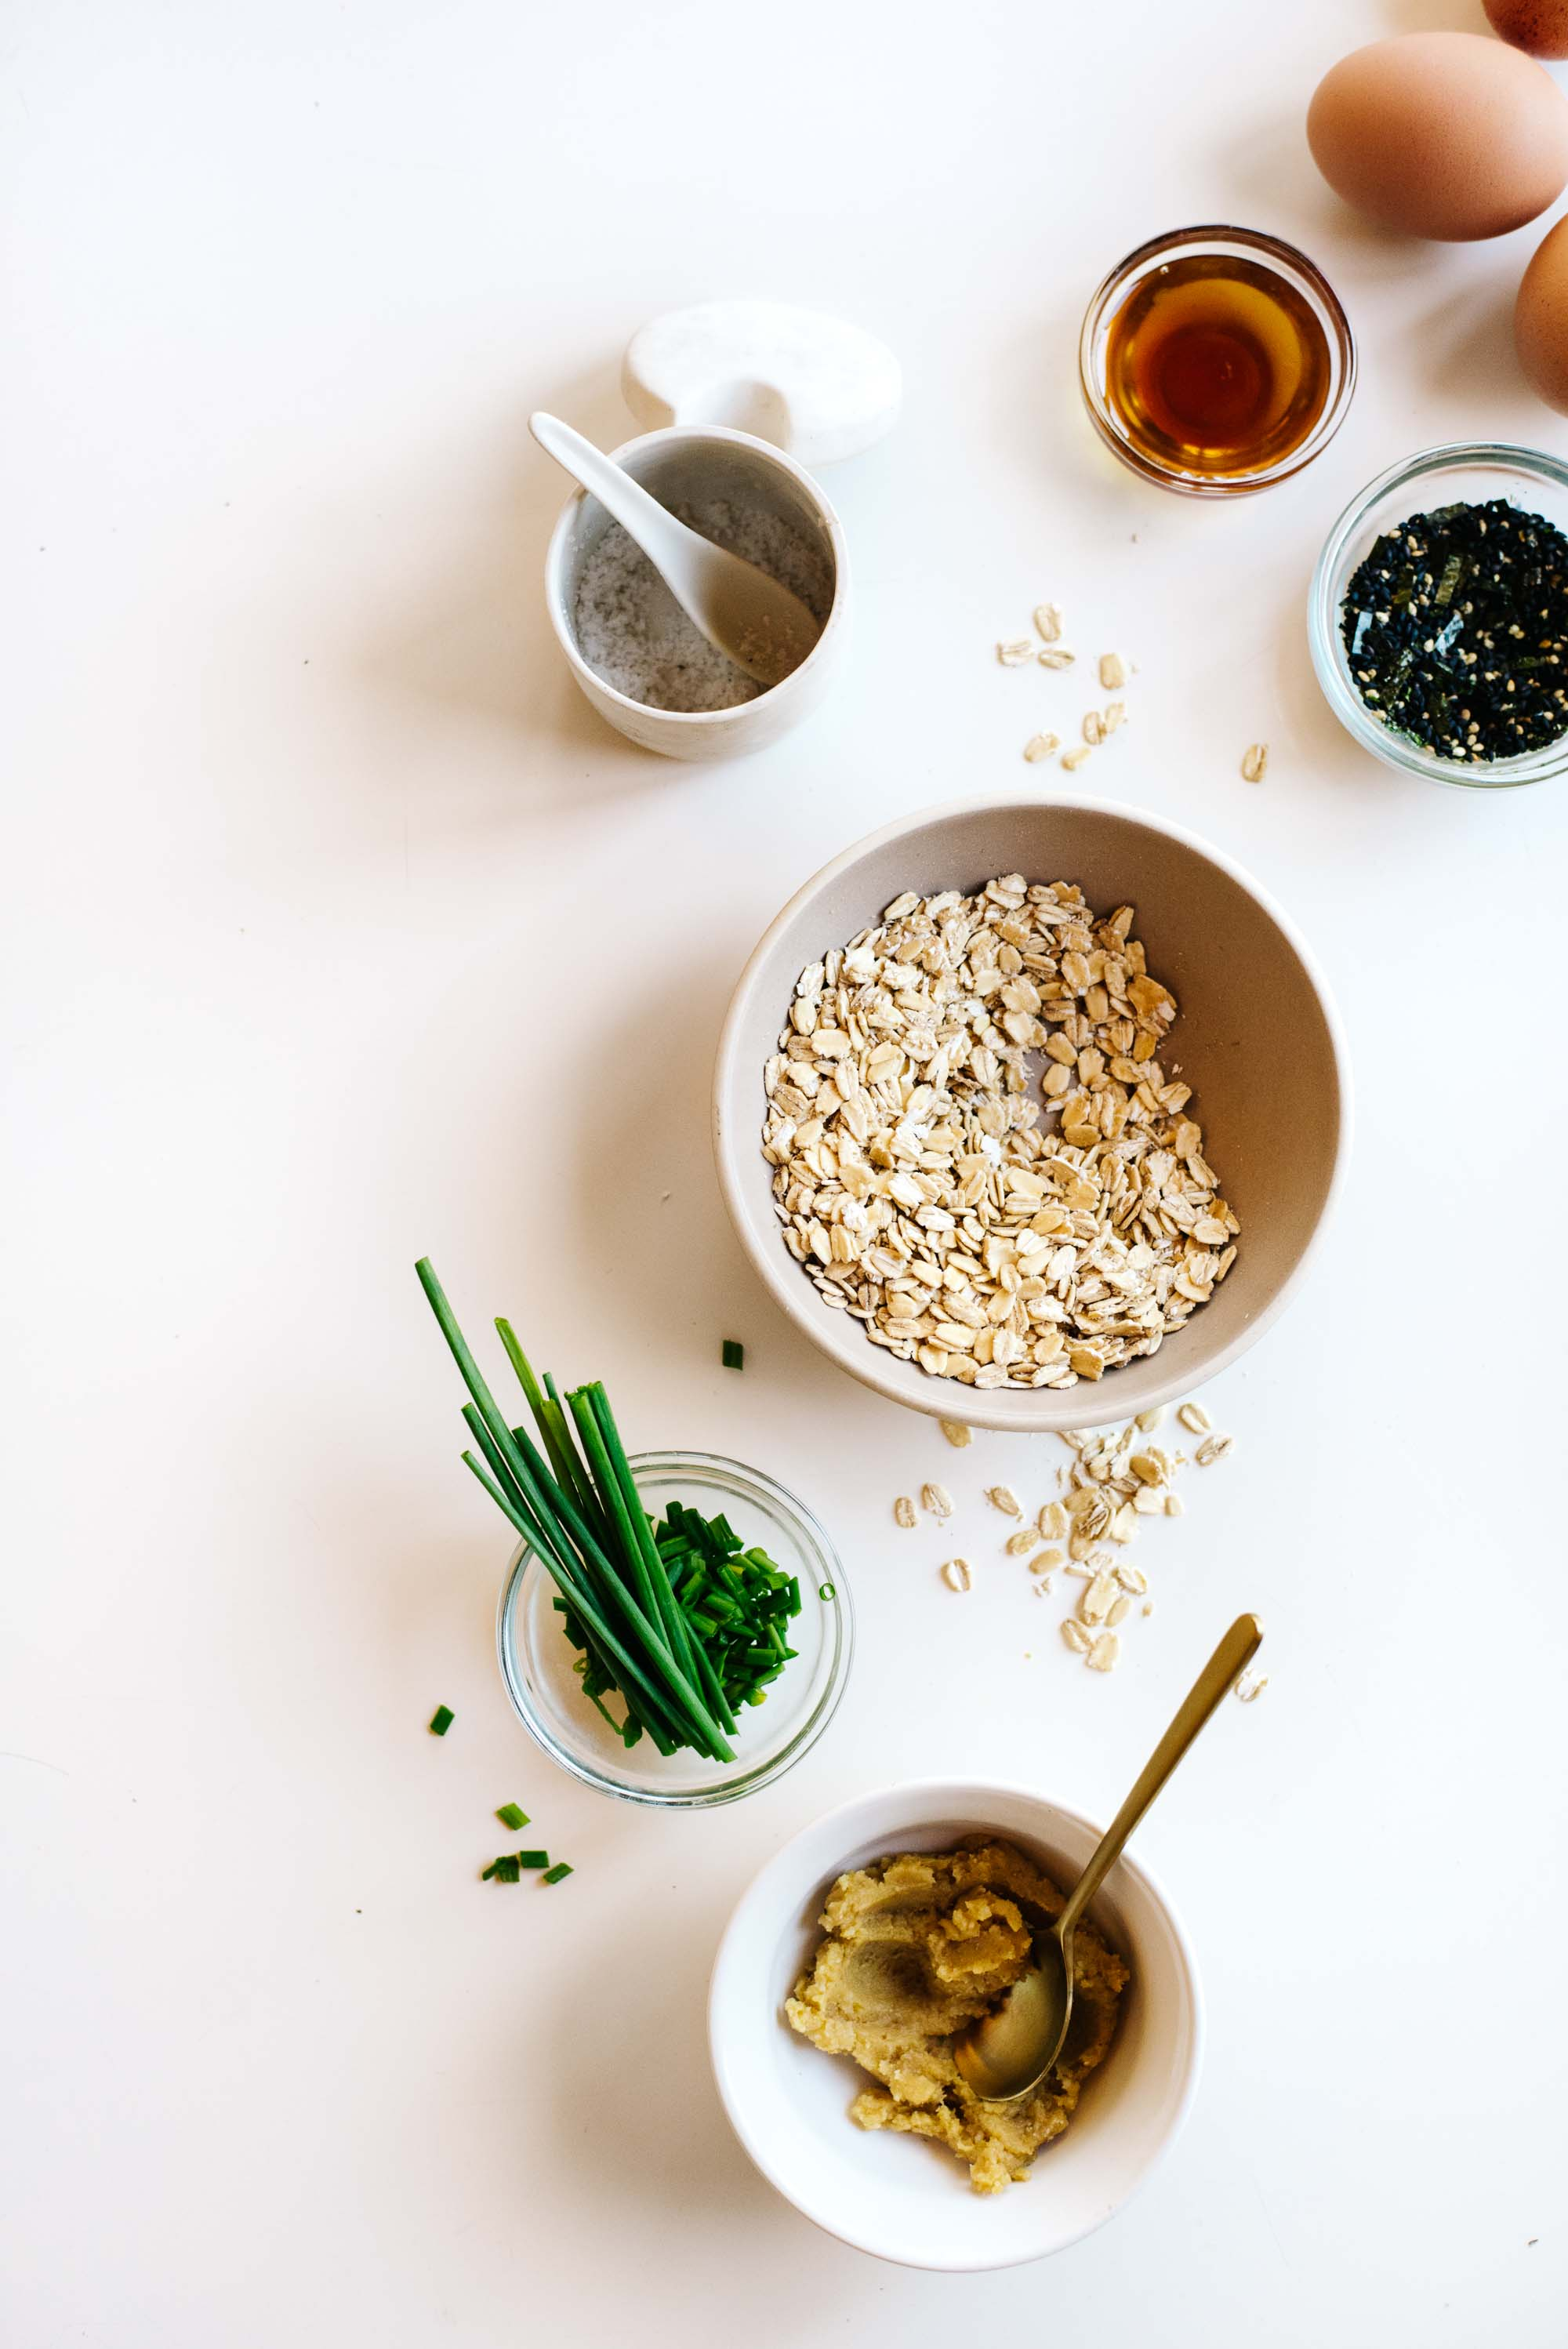 MISO OATS WITH SCALLIONS + SESAME OIL FROM MORE WITH LESS. | Kale ...